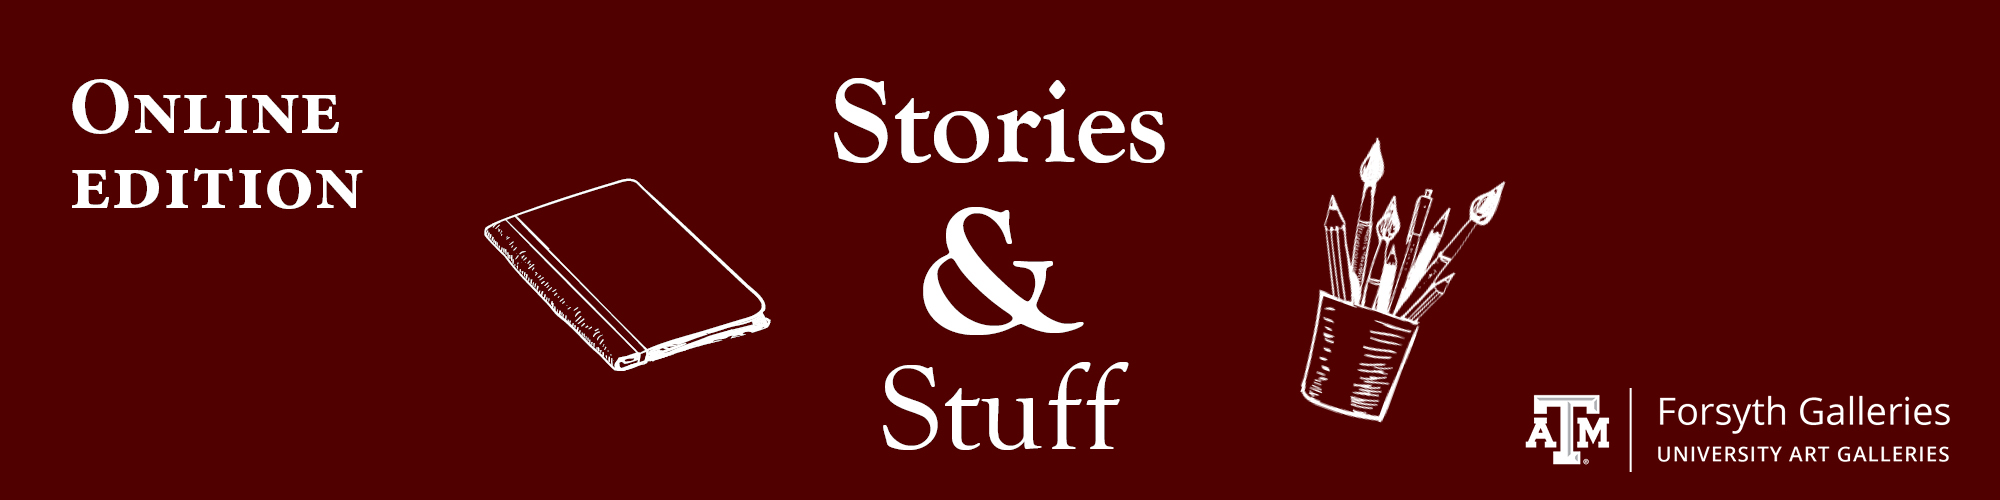 Maroon background; text in white reads Online Edition, Stories & Stuff; white graphic of a book and a cup with drawing utensils